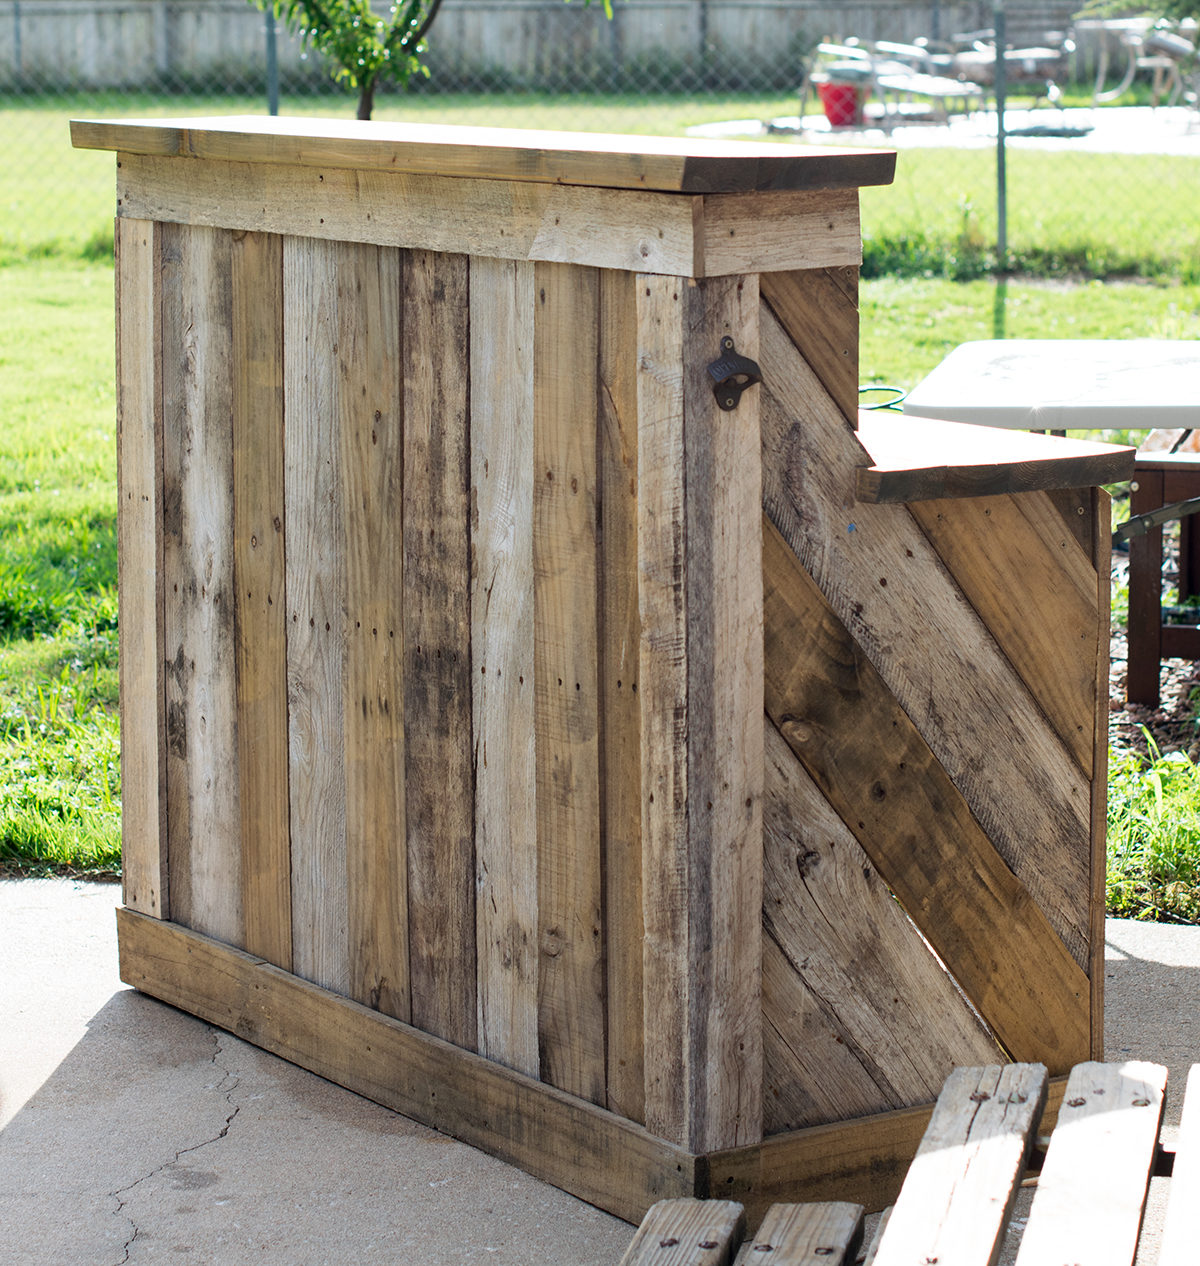 Look at that beautiful bar I love bar and age of pallets, they look perfect